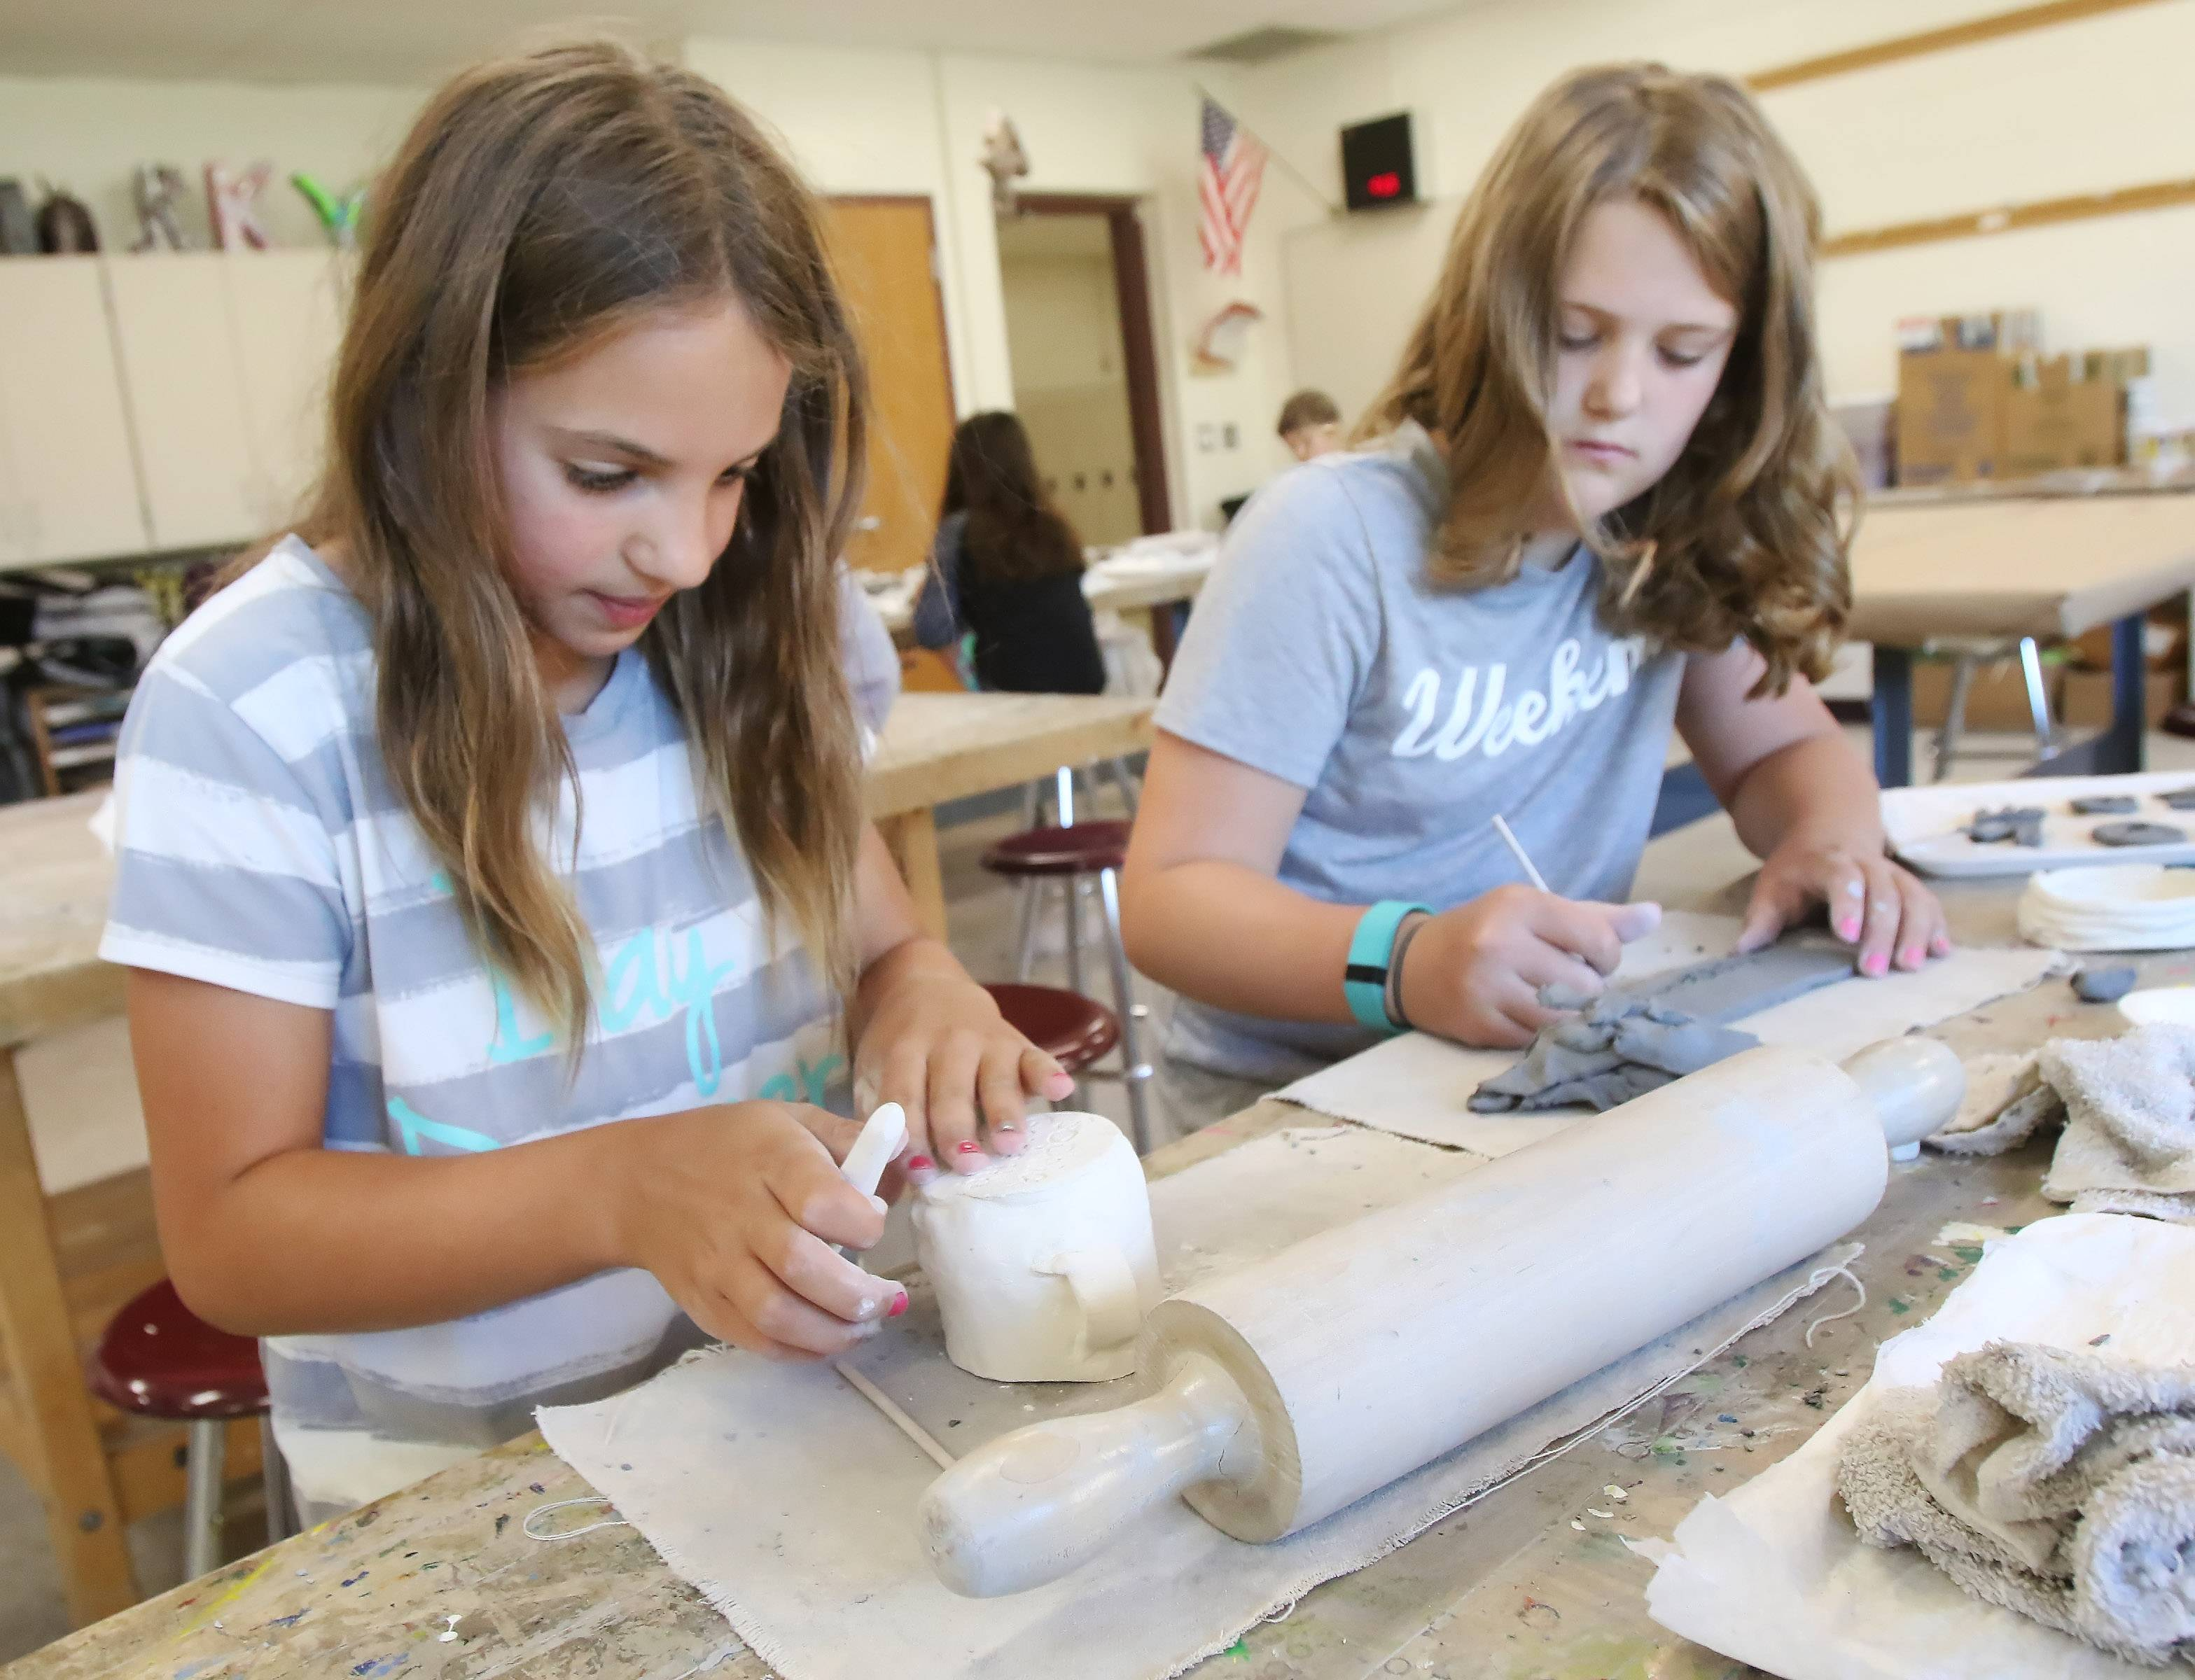 Fifth graders Sophia Griffith, left, and Hannah Babcock work on their clay projects in Intro to Ceramics class Tuesday during Libertyville Elementary District 70 summer school at Highland Middle School.